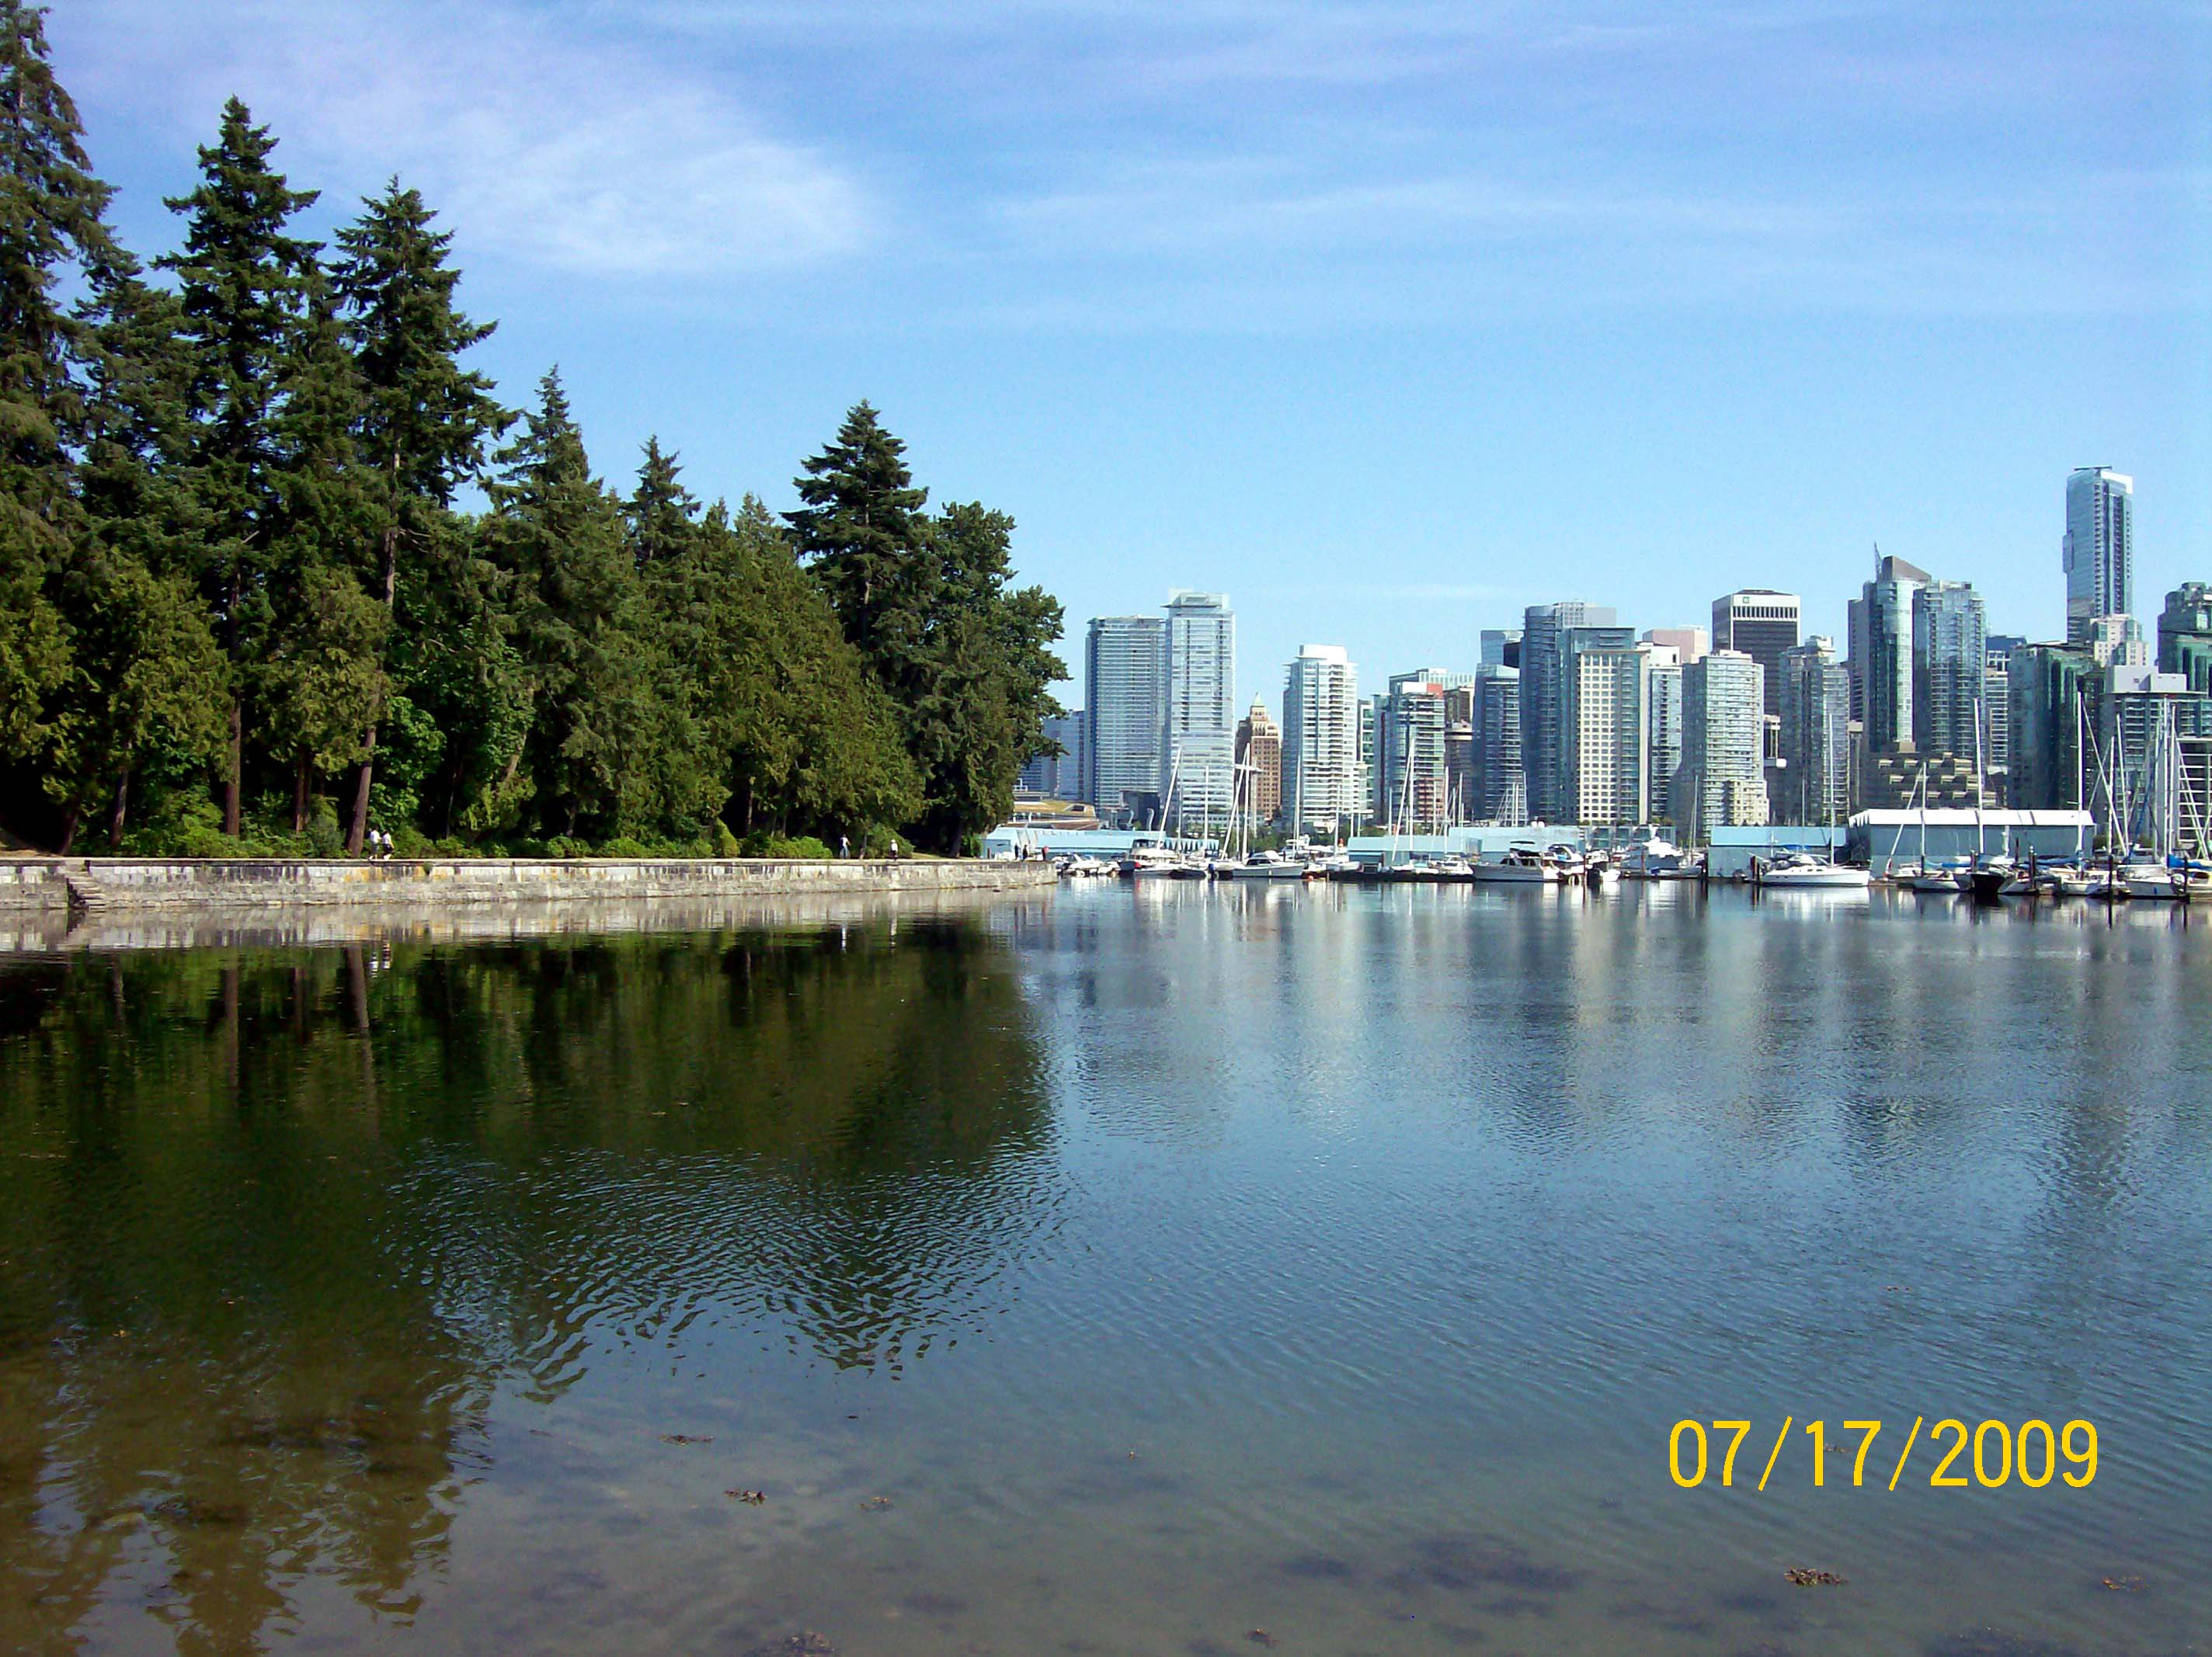 View of the Vancouver skyline from Stanley Park